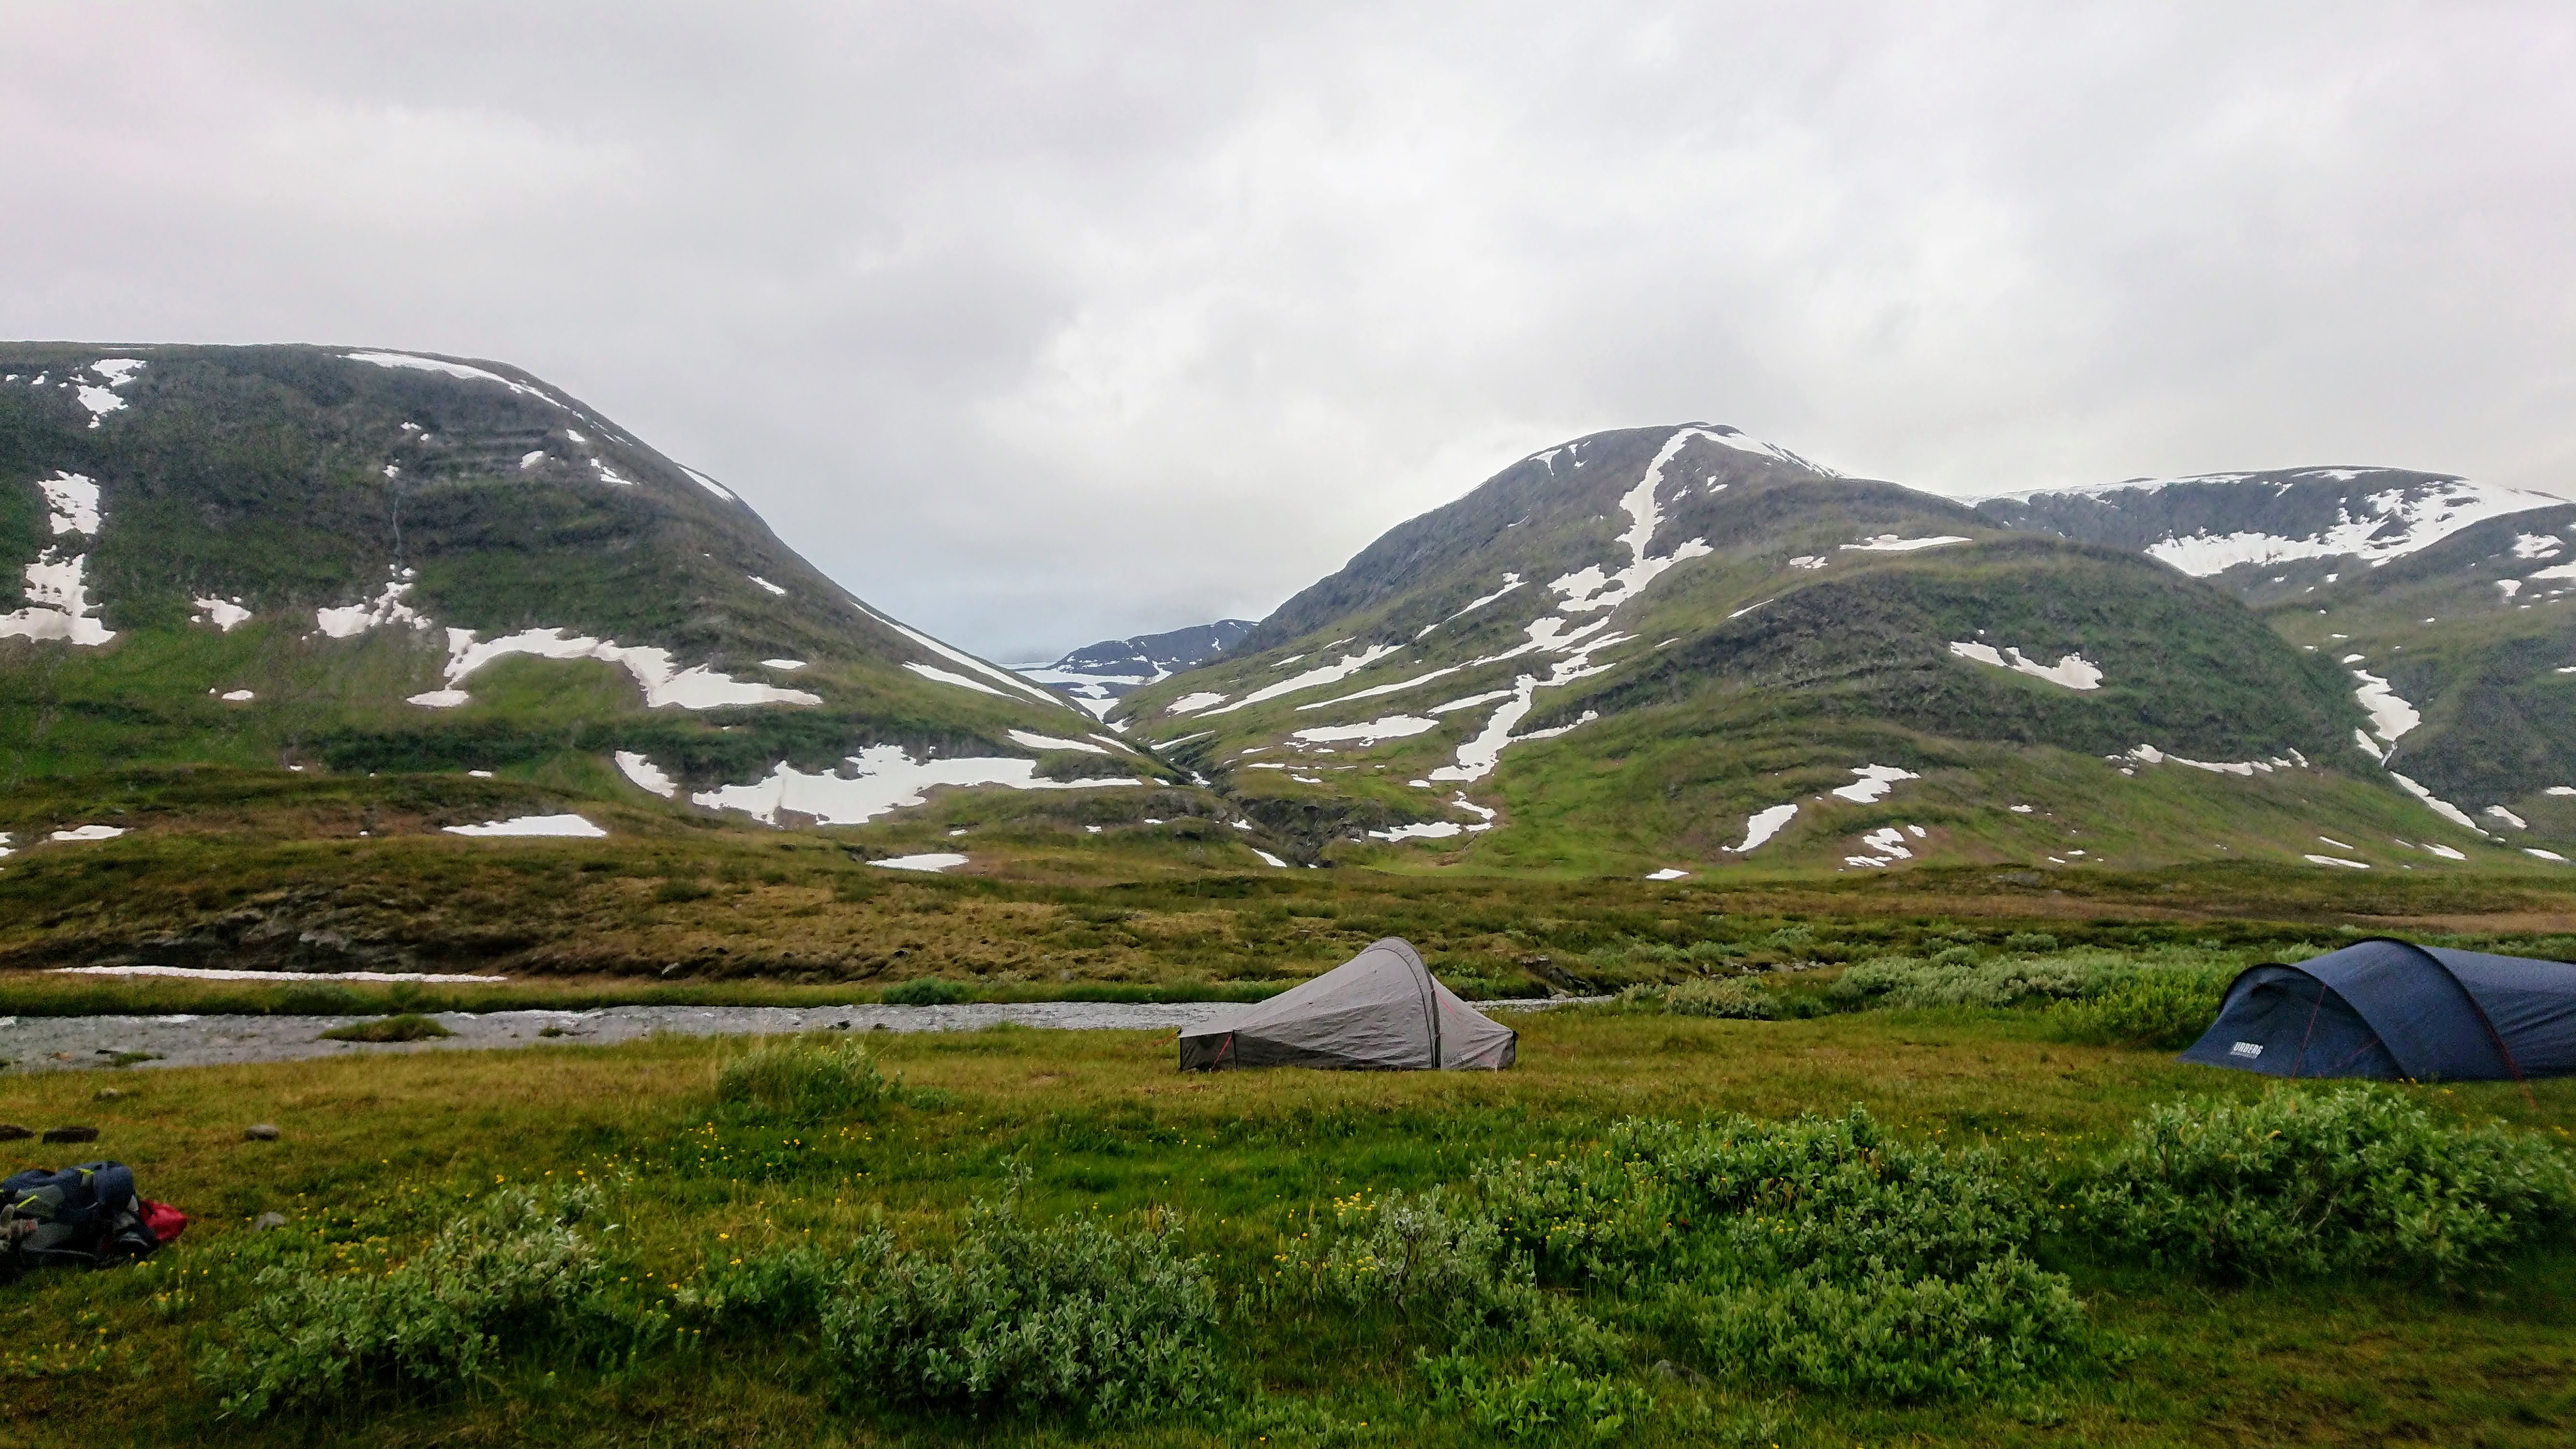 Tent pitch by Sälka